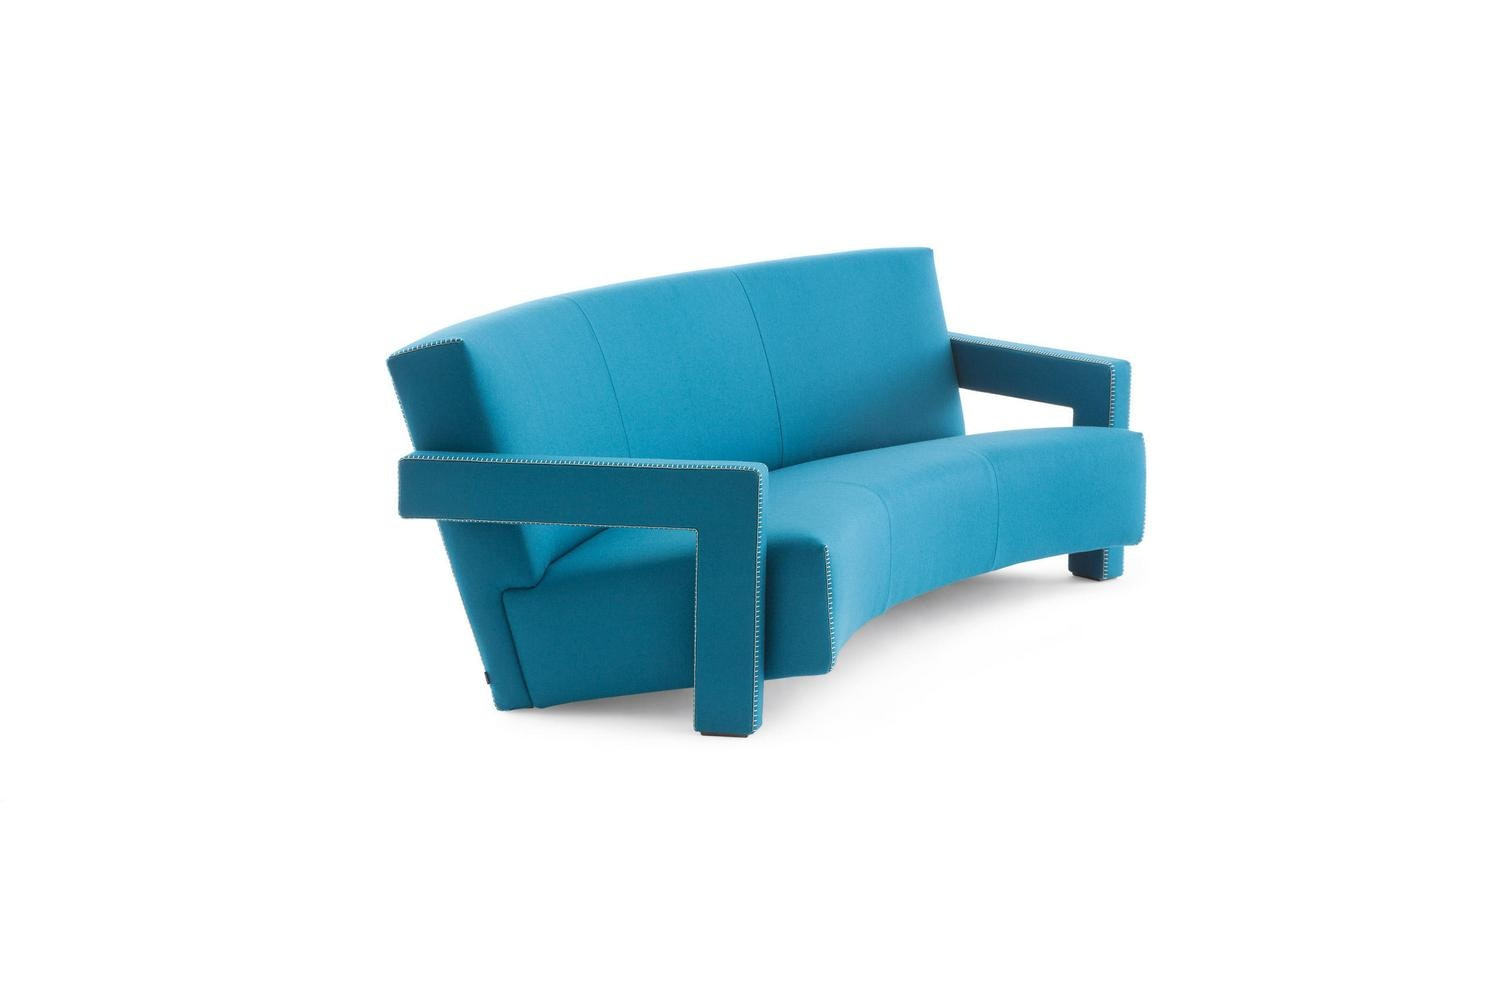 637 Utrecht Sofa by Gerrit Thomas Rietveld for Cassina